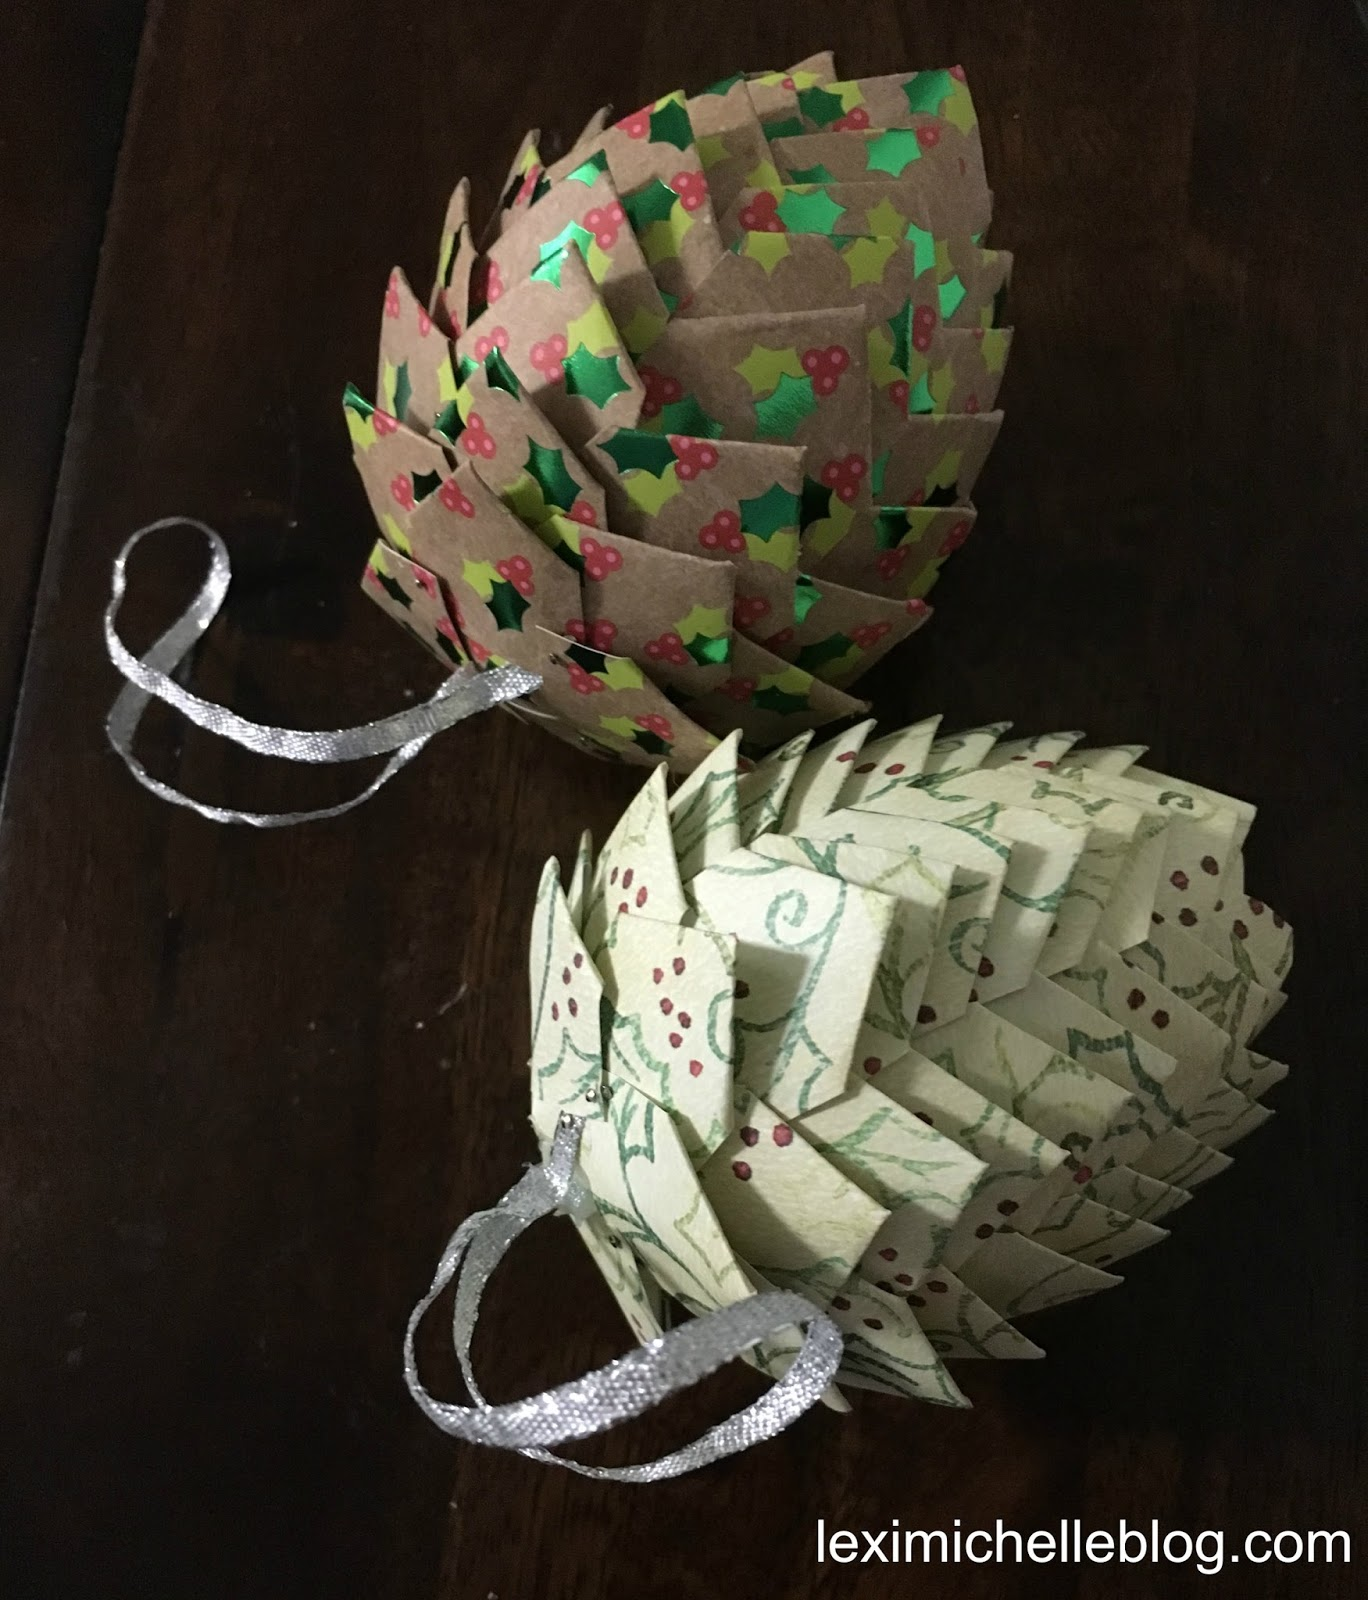 Diy Christmas Ornaments Made From Paper: Lexi Michelle Blog: DIY Paper Pine Cone Christmas Ornaments